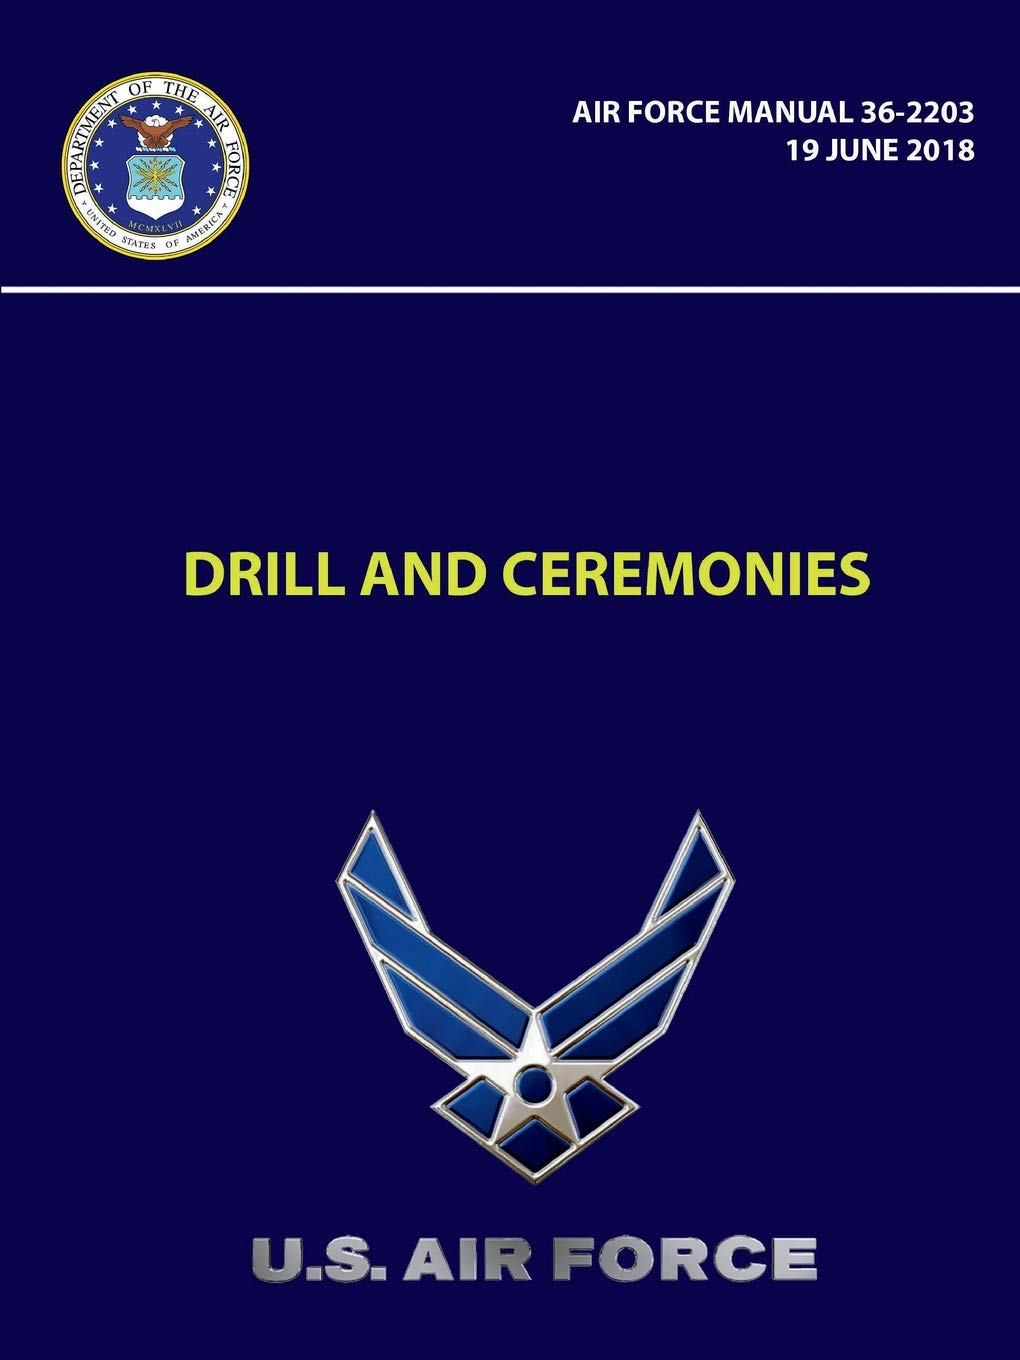 Drill and Ceremonies - Air Force Manual 36-2203 (19 June 2018) Paperback –  July 18, 2018